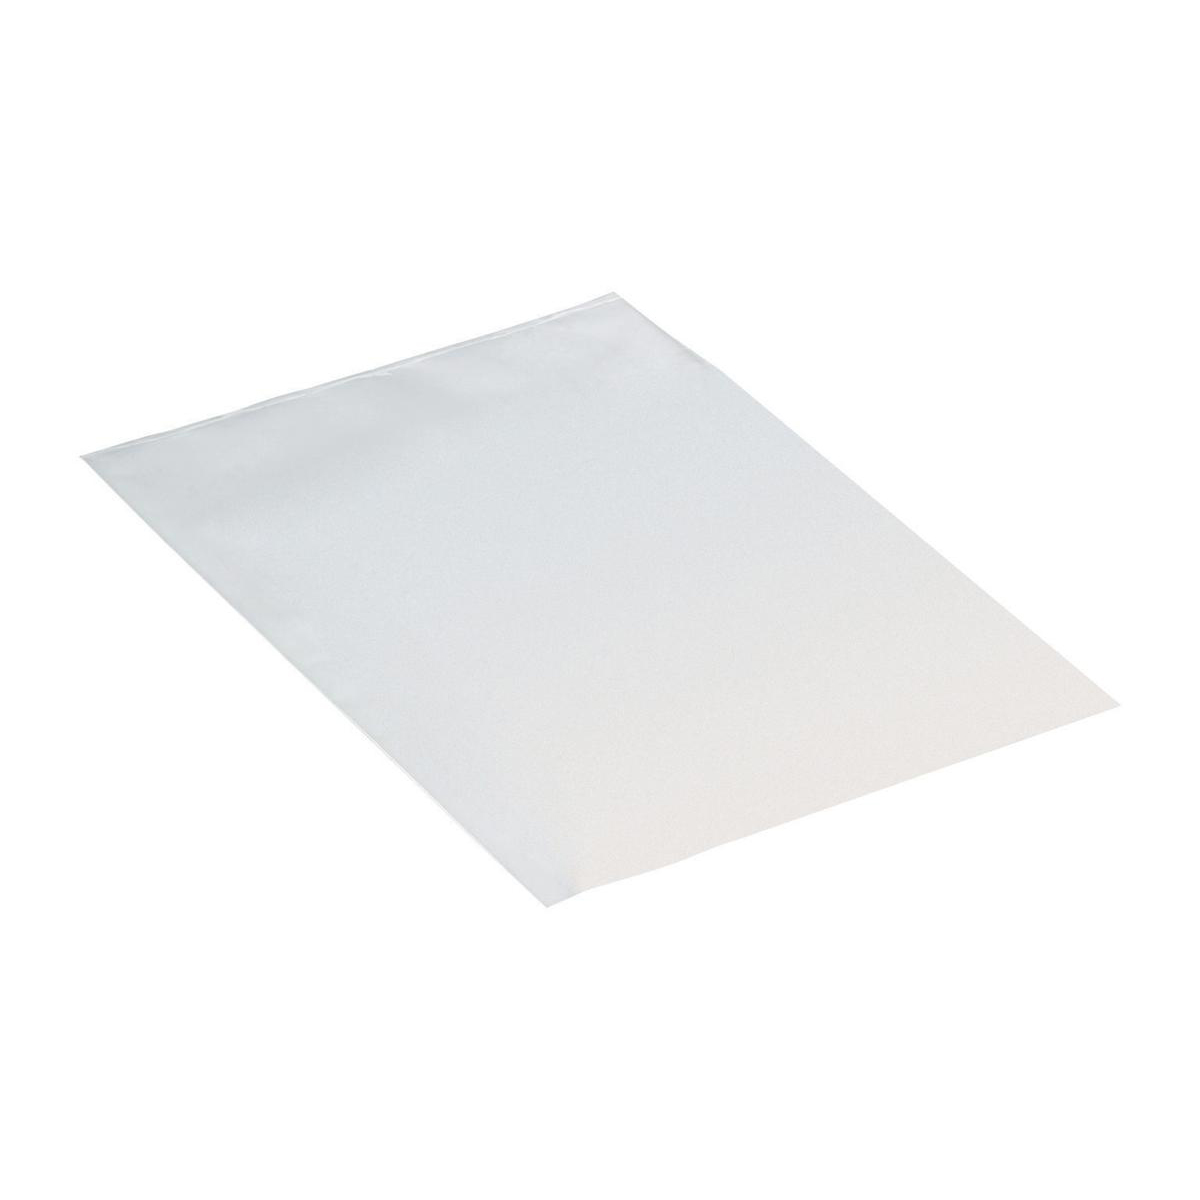 Polybags Polythene Lightweight 120 Gauge 300x450mm Transparent [Pack 1000]